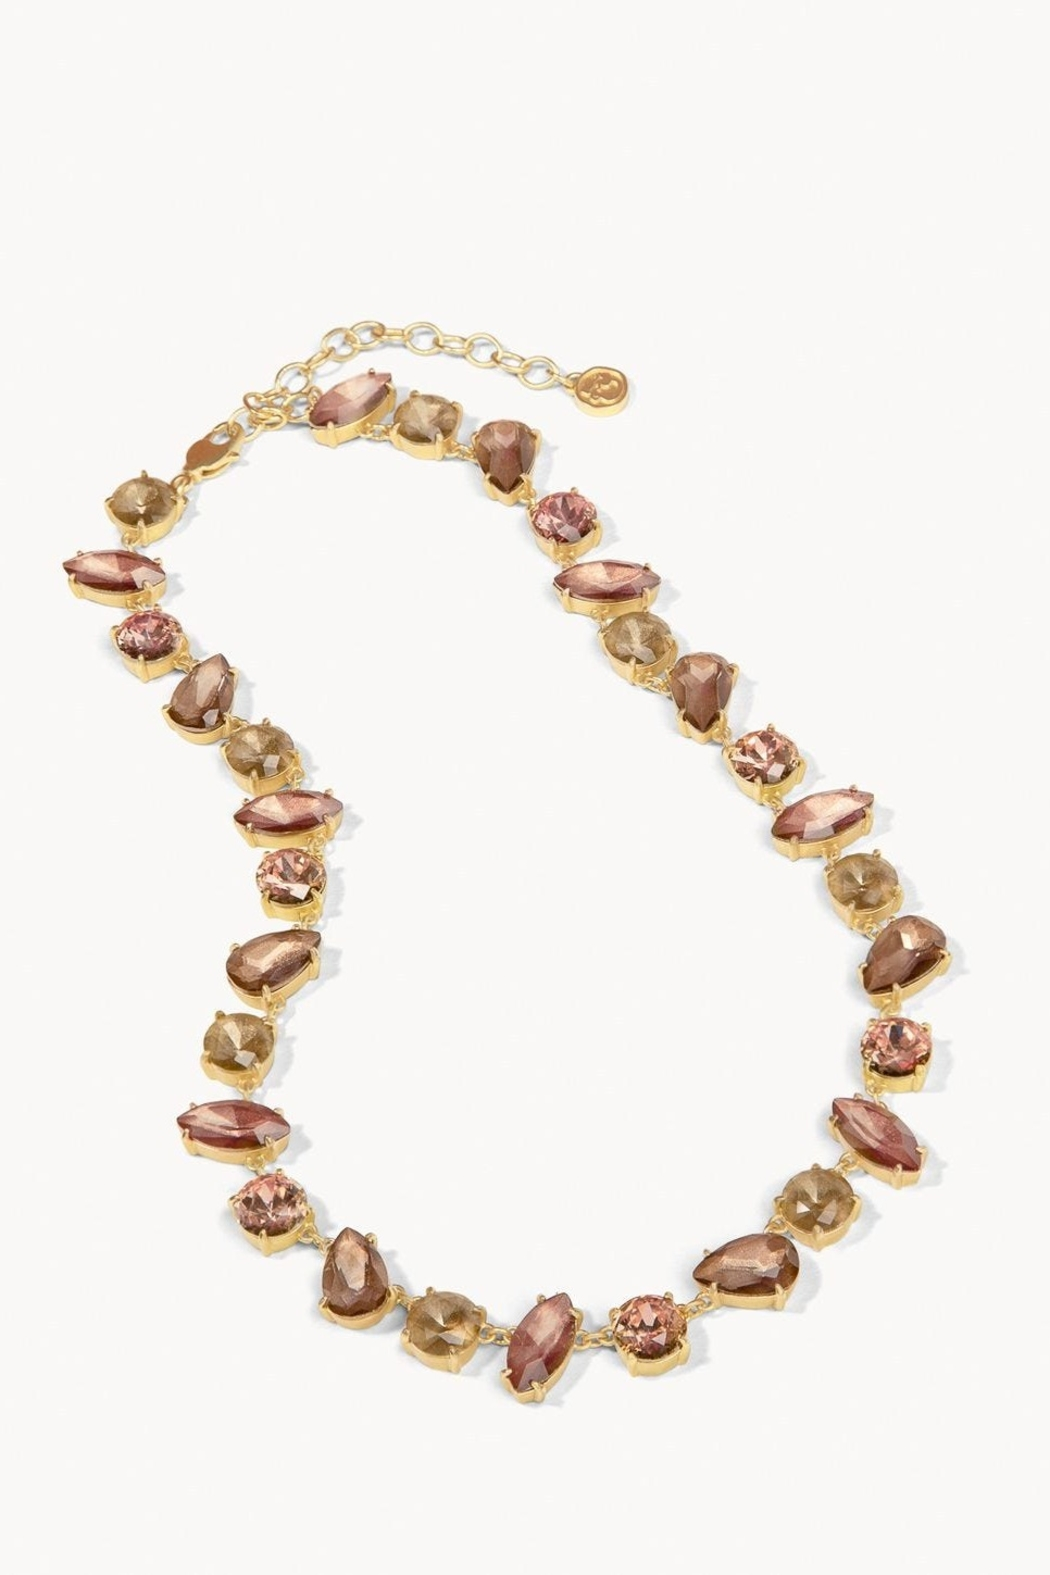 Spartina 449 Cocktail Necklace 17